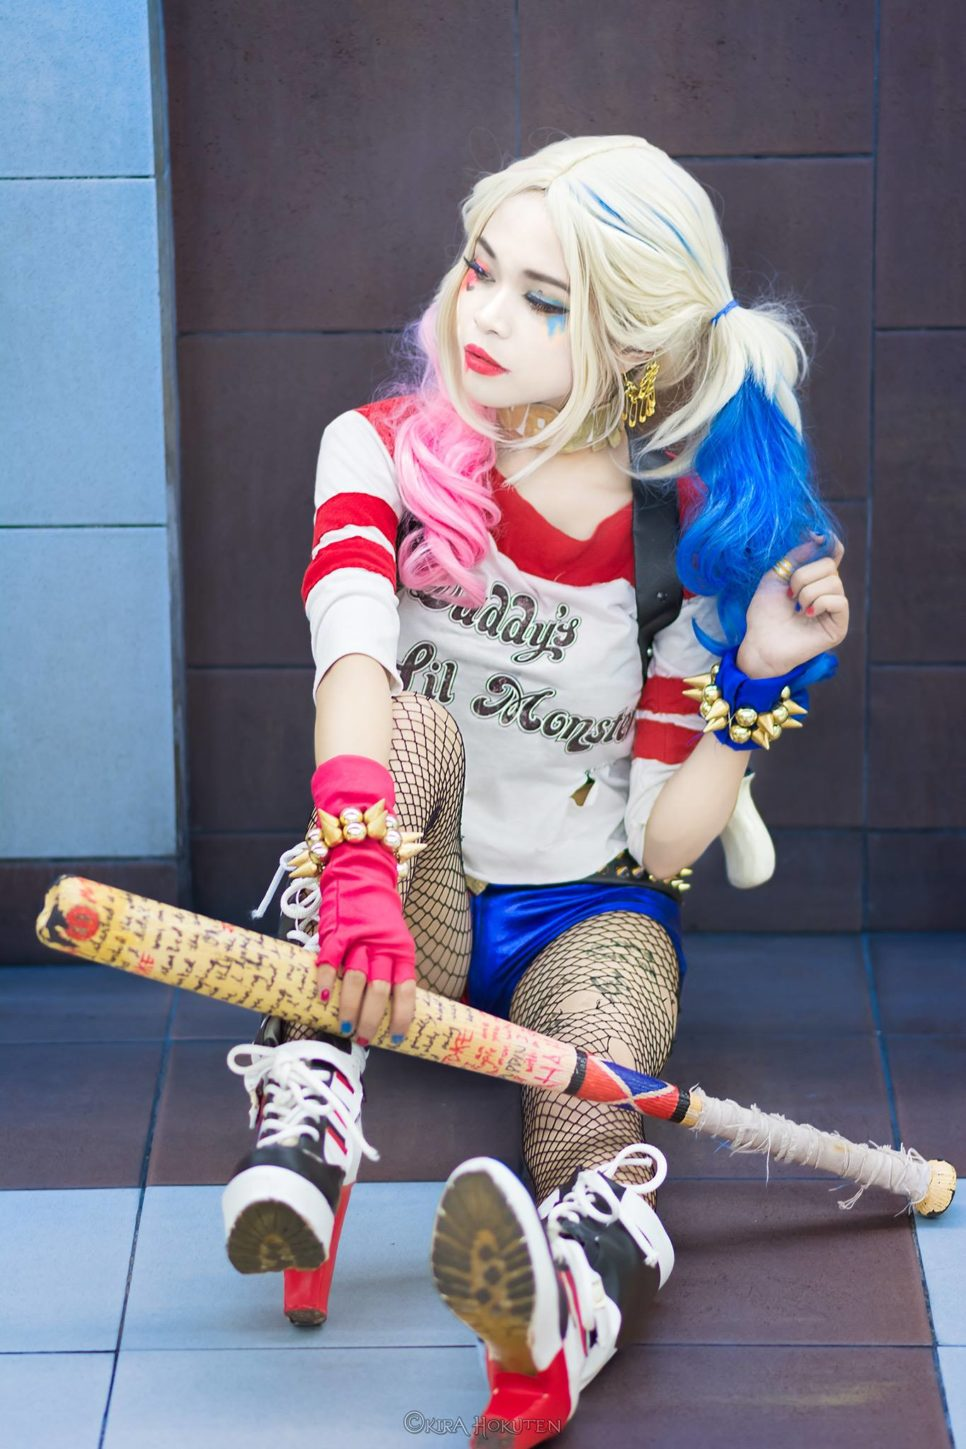 Harley Quinn z Suicide Squad - czas na cosplay!